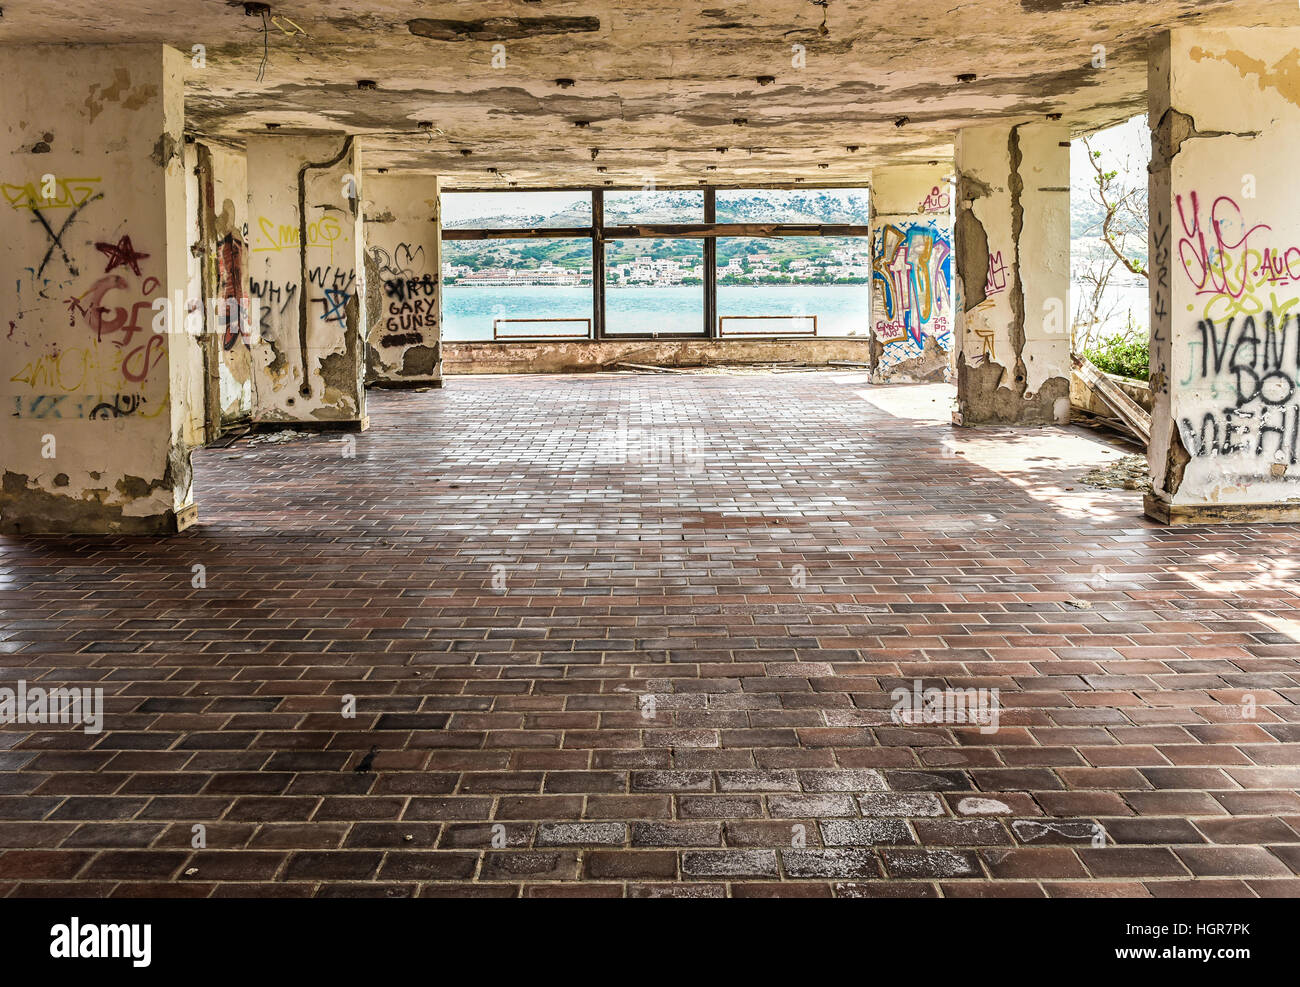 Graffiti wall tiles - Ruins Of Abandoned Hotel Building With Old Floor Tiles Graffiti And Ruined Ceiling And Walls